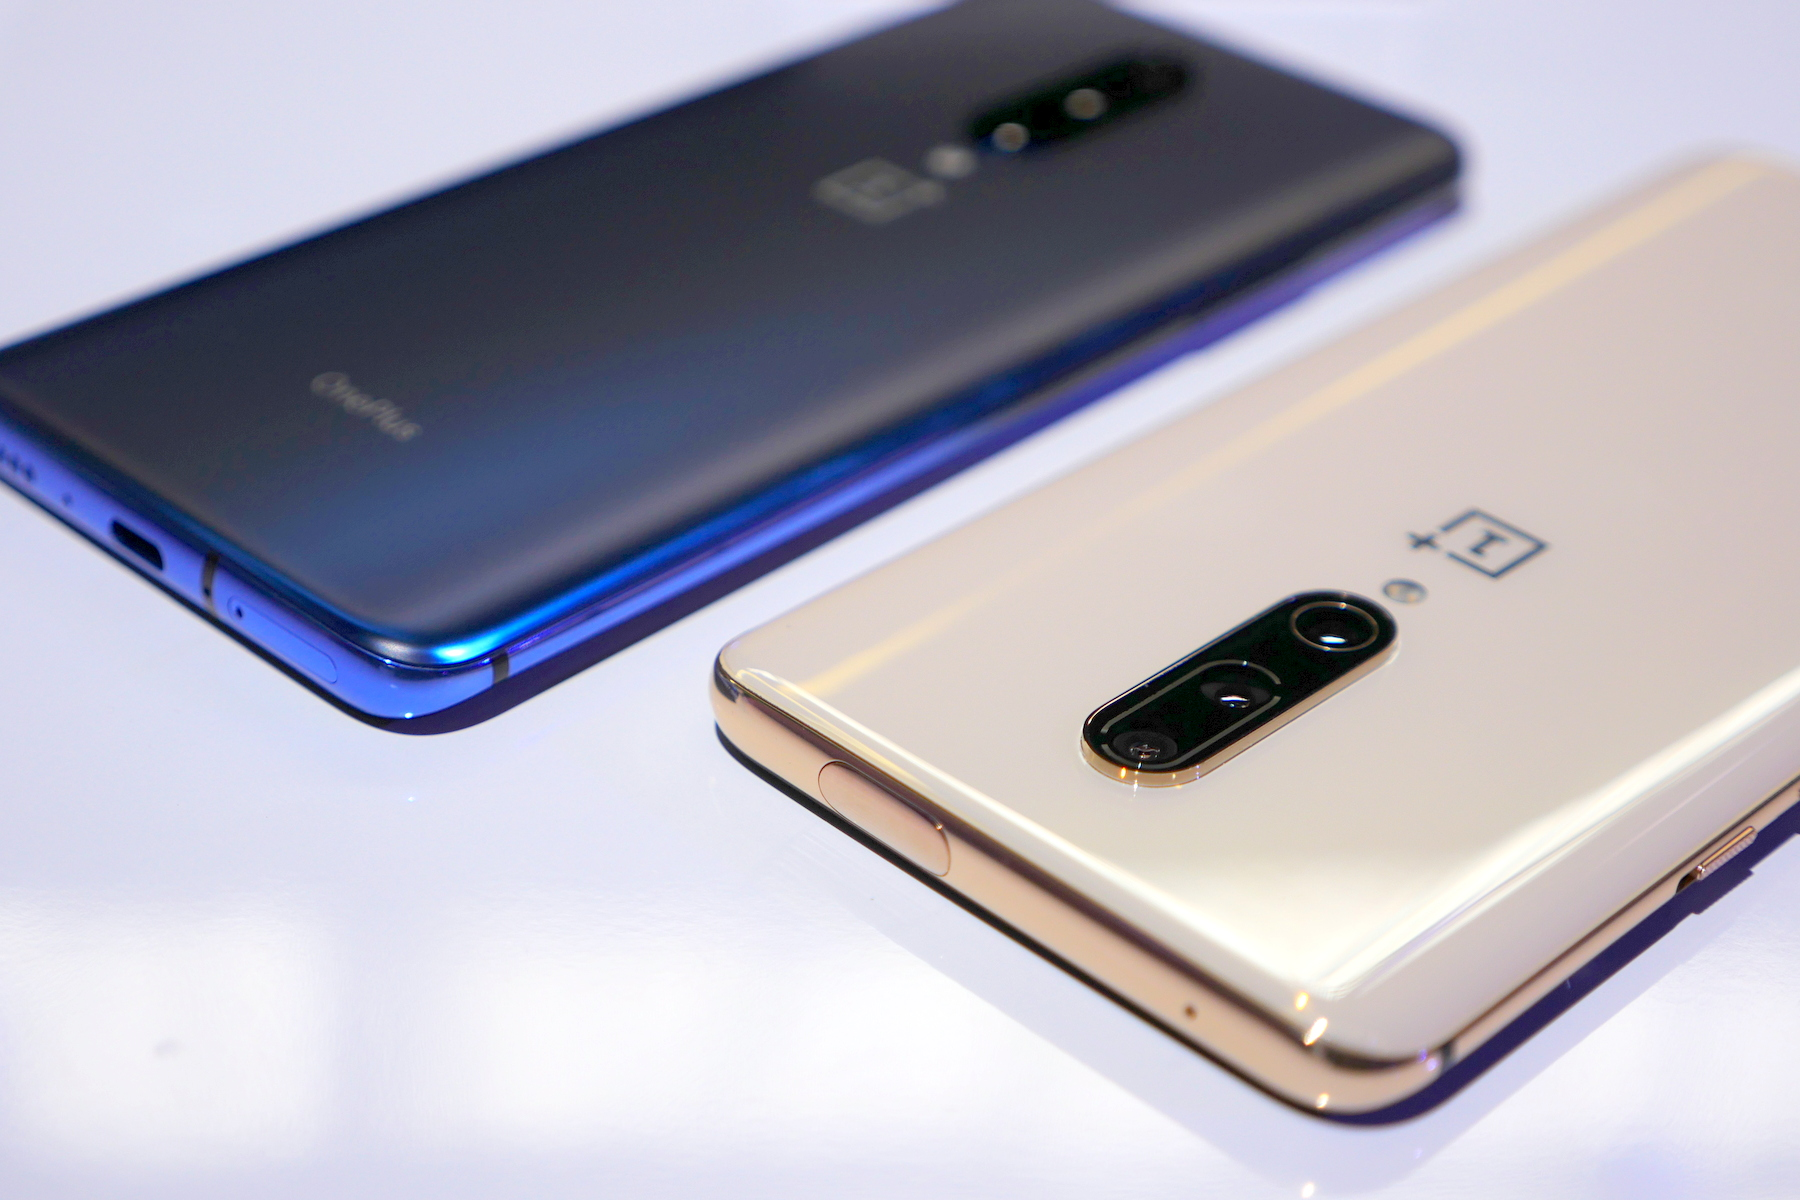 OnePlus 7 Pro hands-on: finally, a true flagship